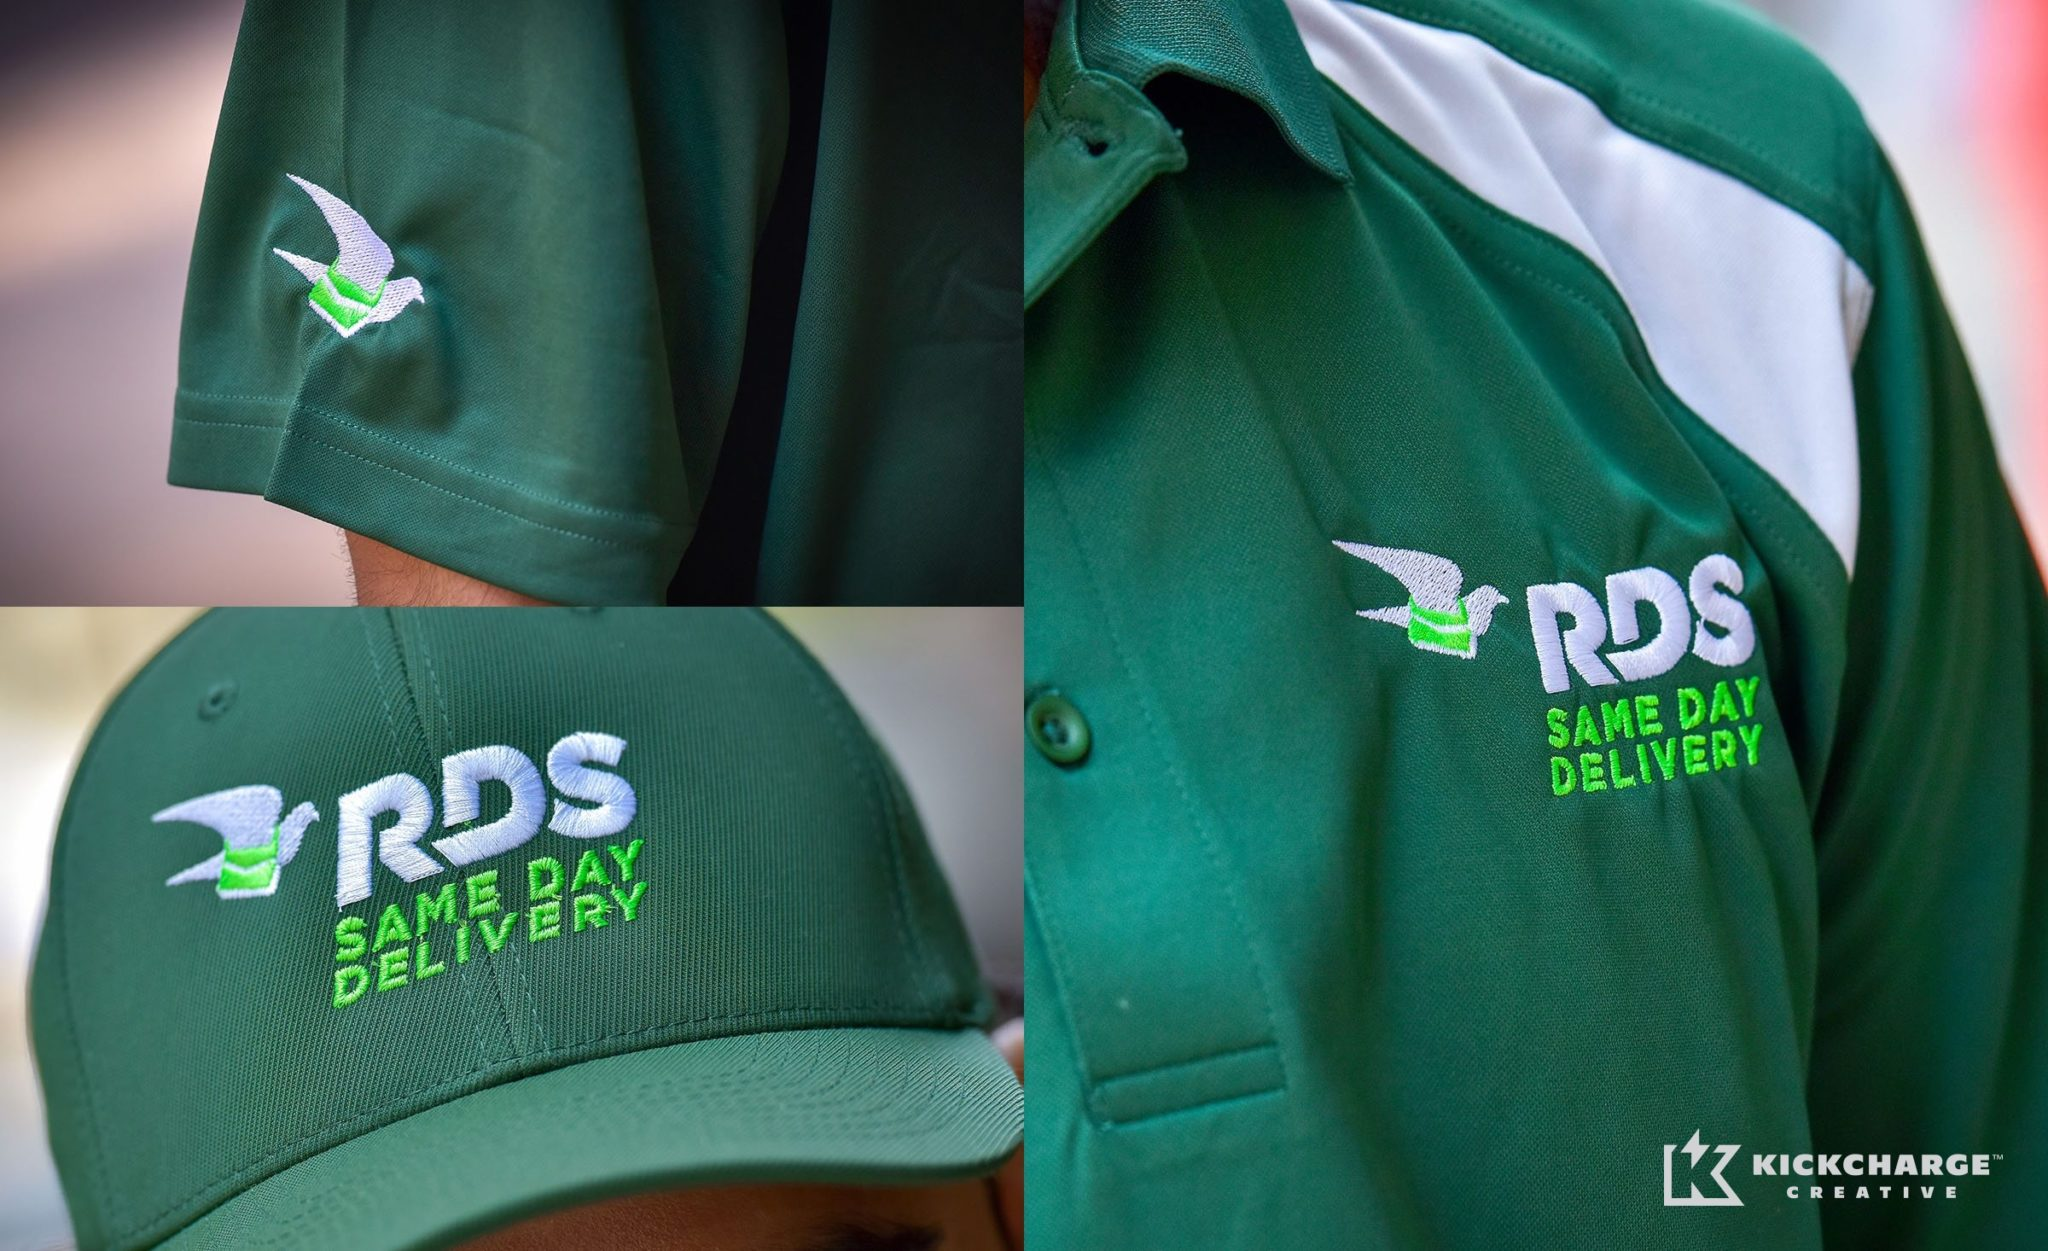 Uniform designs for RDS Same Day Delivery.